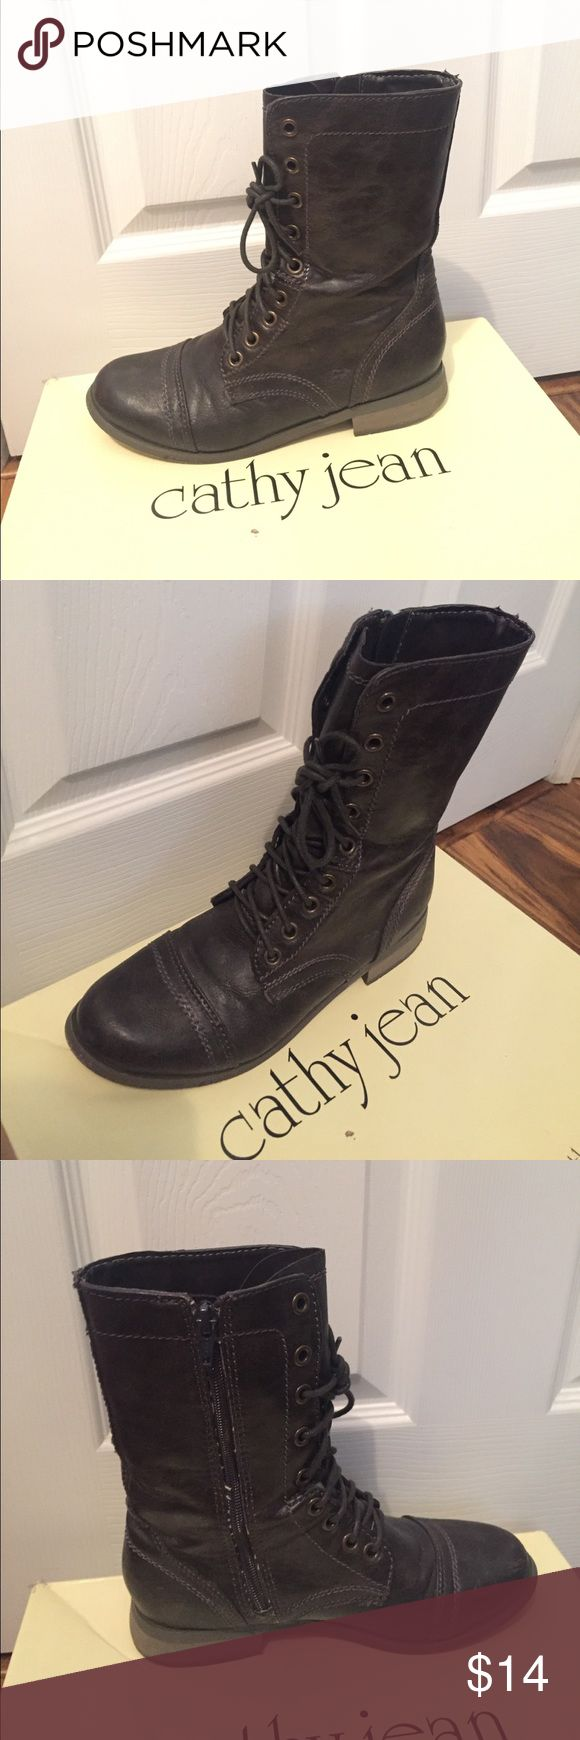 Boots size 7.5 Dark brown. I just did a price reduction! Price is firm, don't send me offers (they will be declined) this is the lowest that I will go Cathy Jean Shoes Lace Up Boots